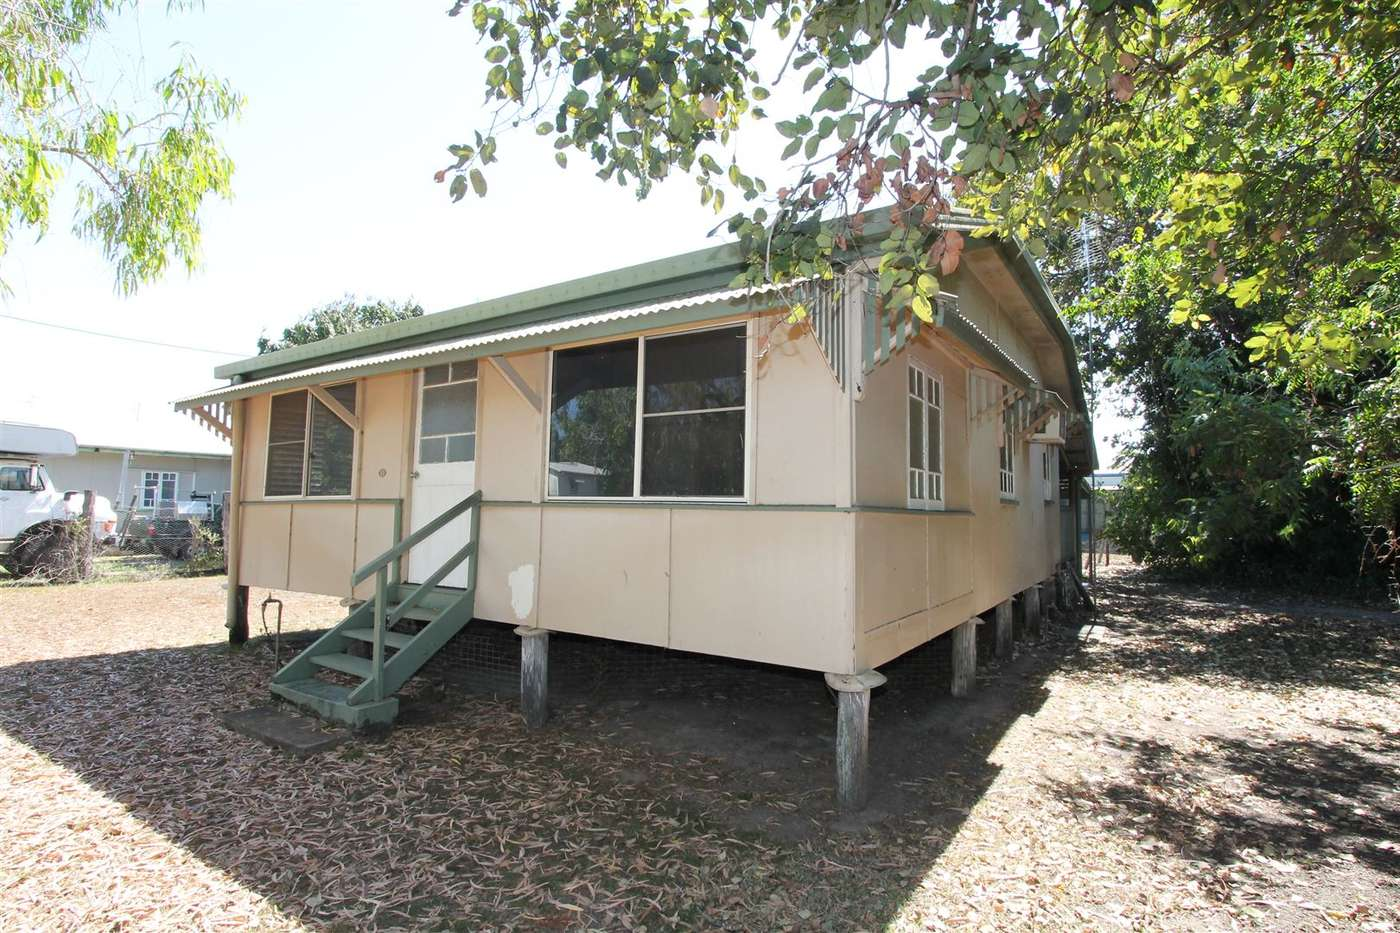 Main view of Homely house listing, 63 Grey Street, Ayr, QLD 4807